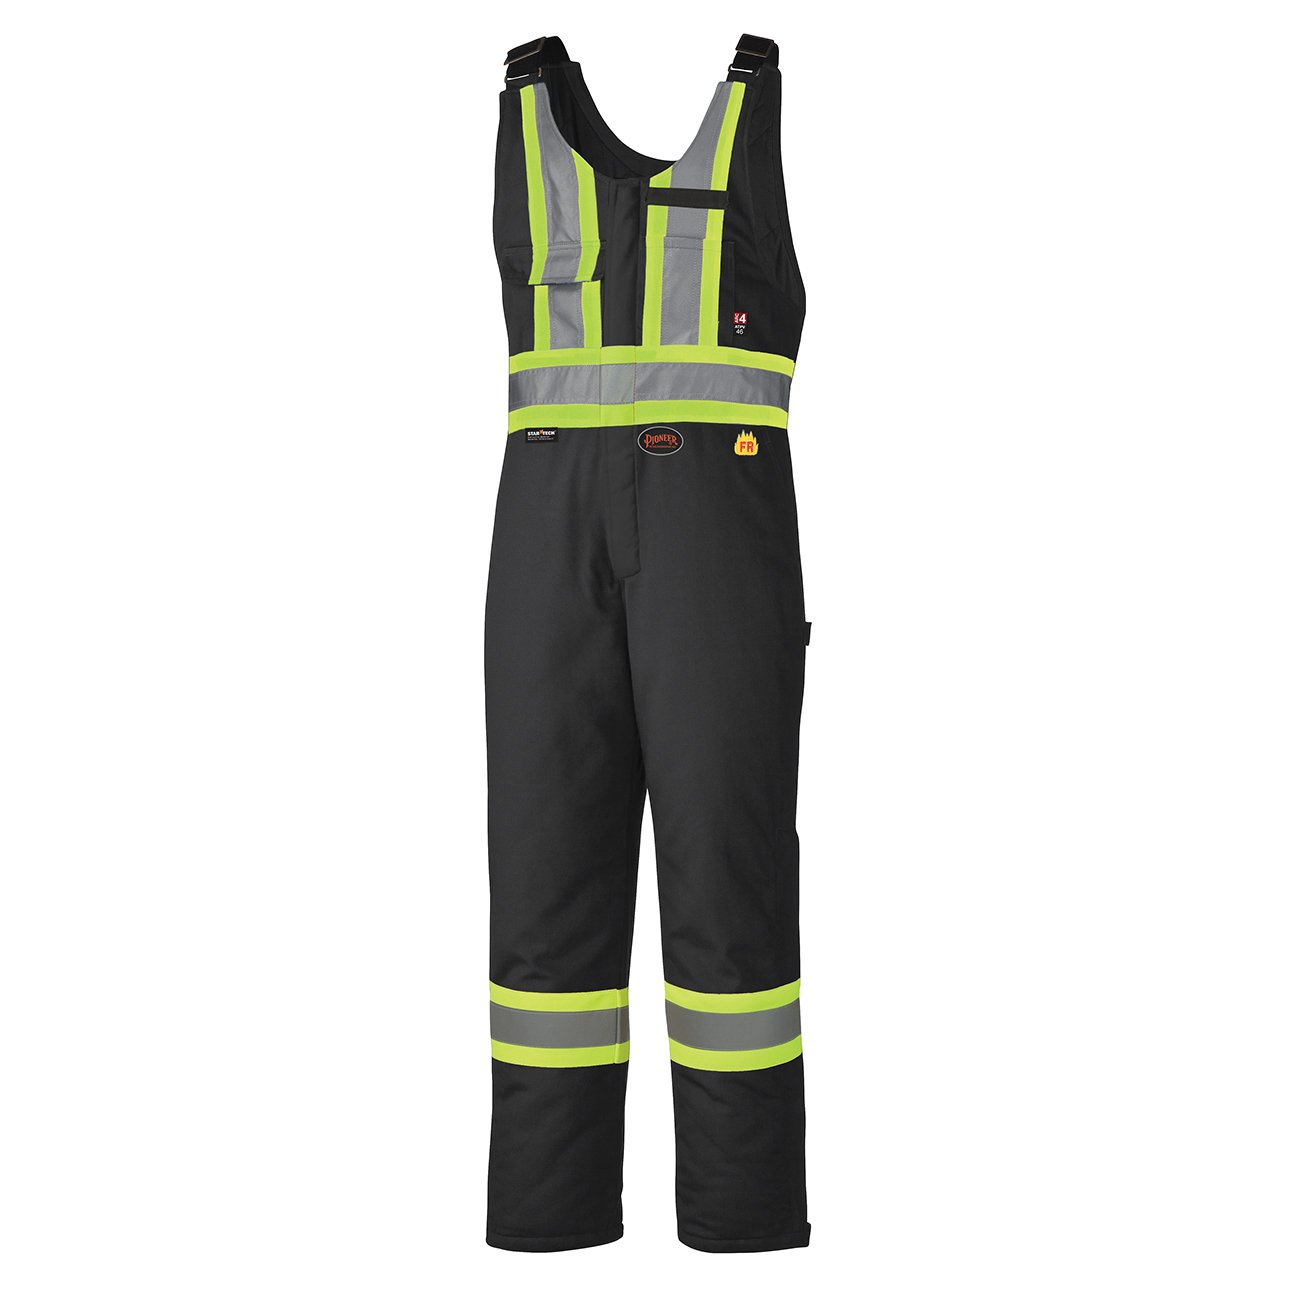 FR Insulated Work Overall Bib Pants- 7 Pockets - Easy Boot Access, Hi-Vis Pioneer V2560370-L